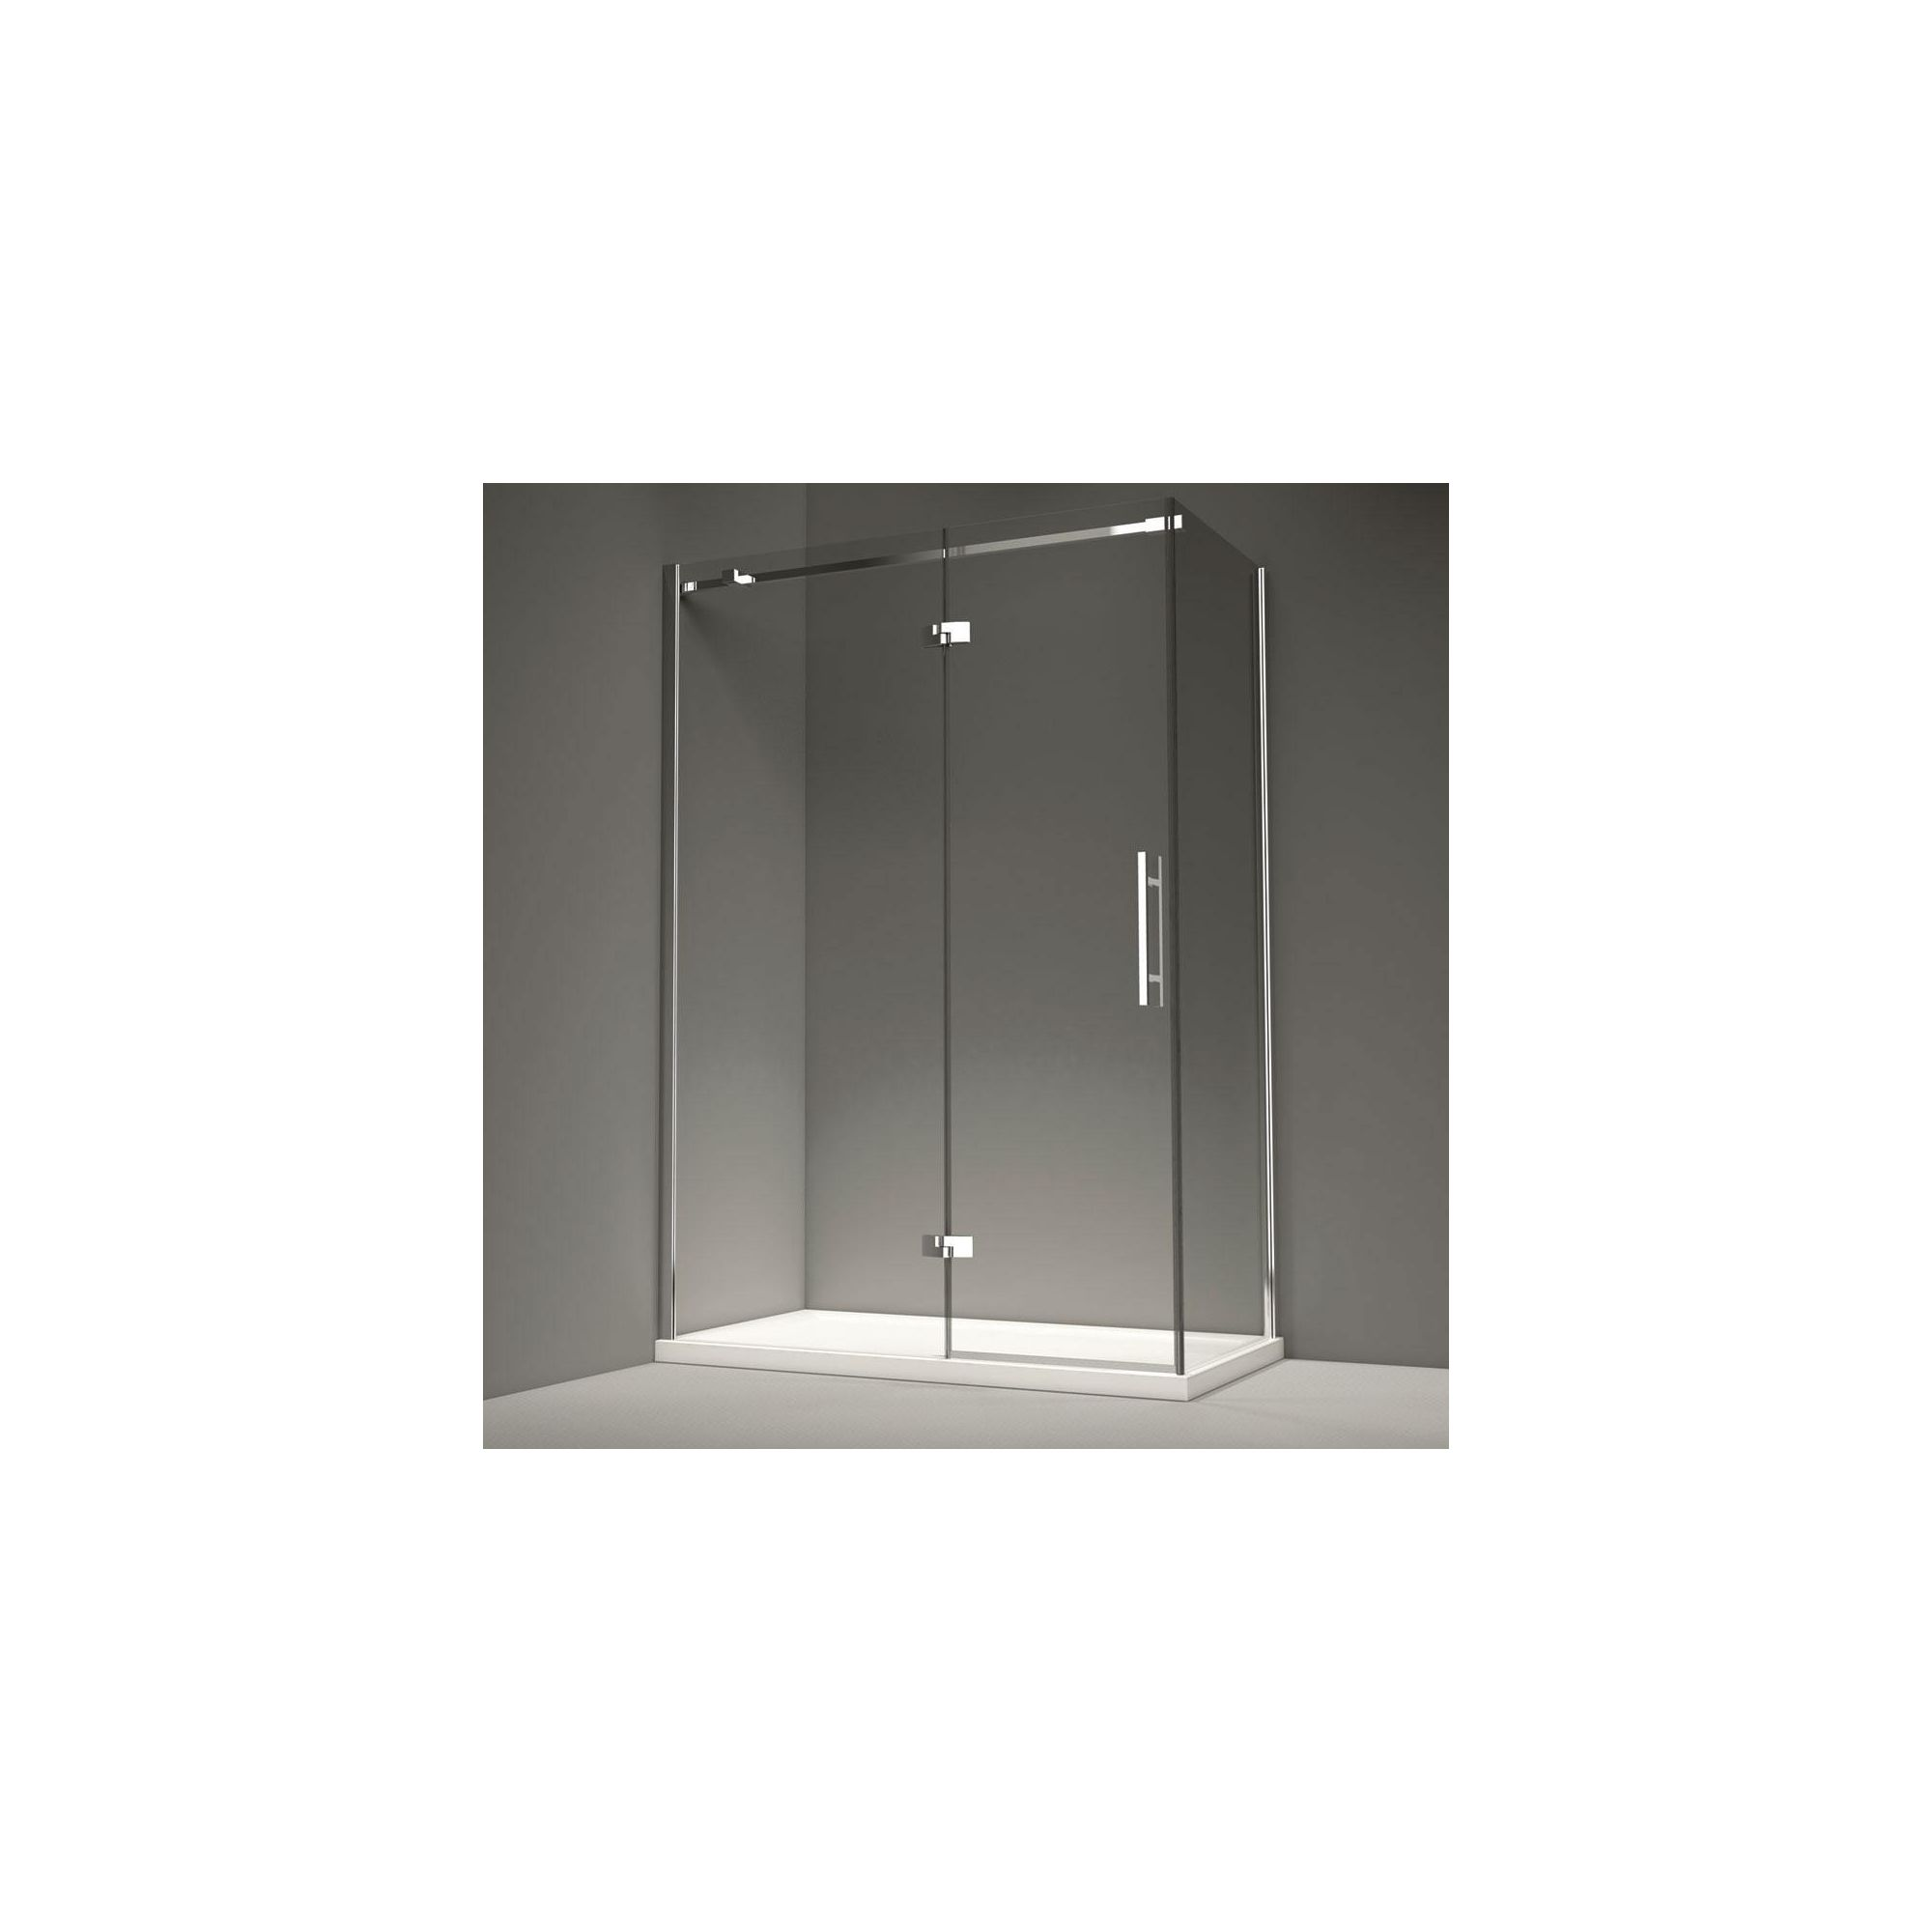 Merlyn Series 9 Inline Hinged Shower Door, 900mm Wide, 8mm Glass, Left Handed at Tesco Direct